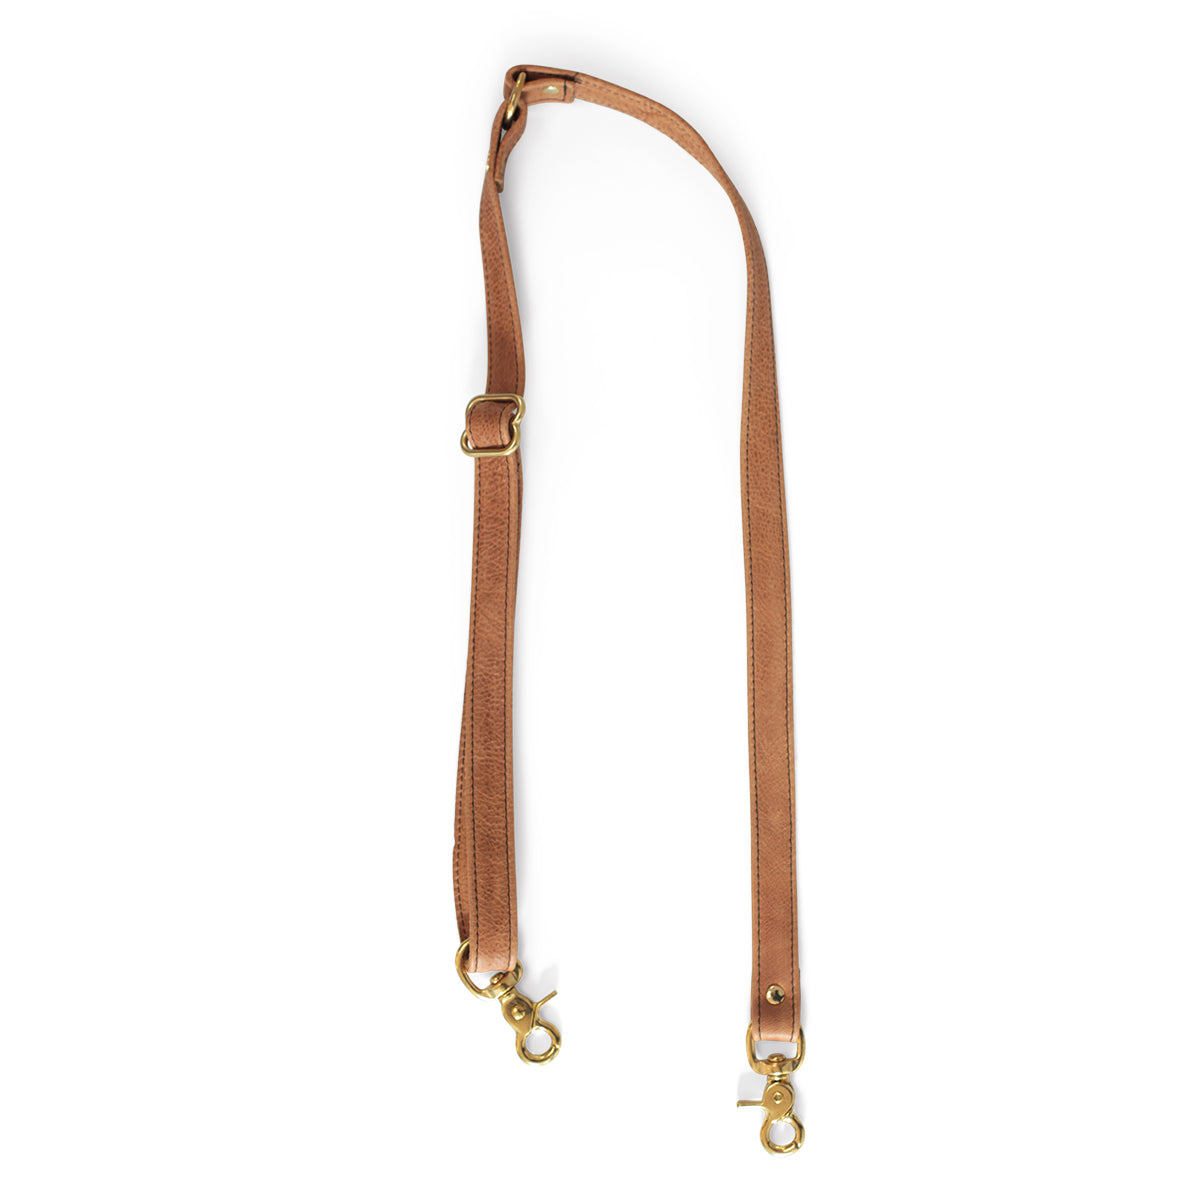 Two Piece Strap - Saddle